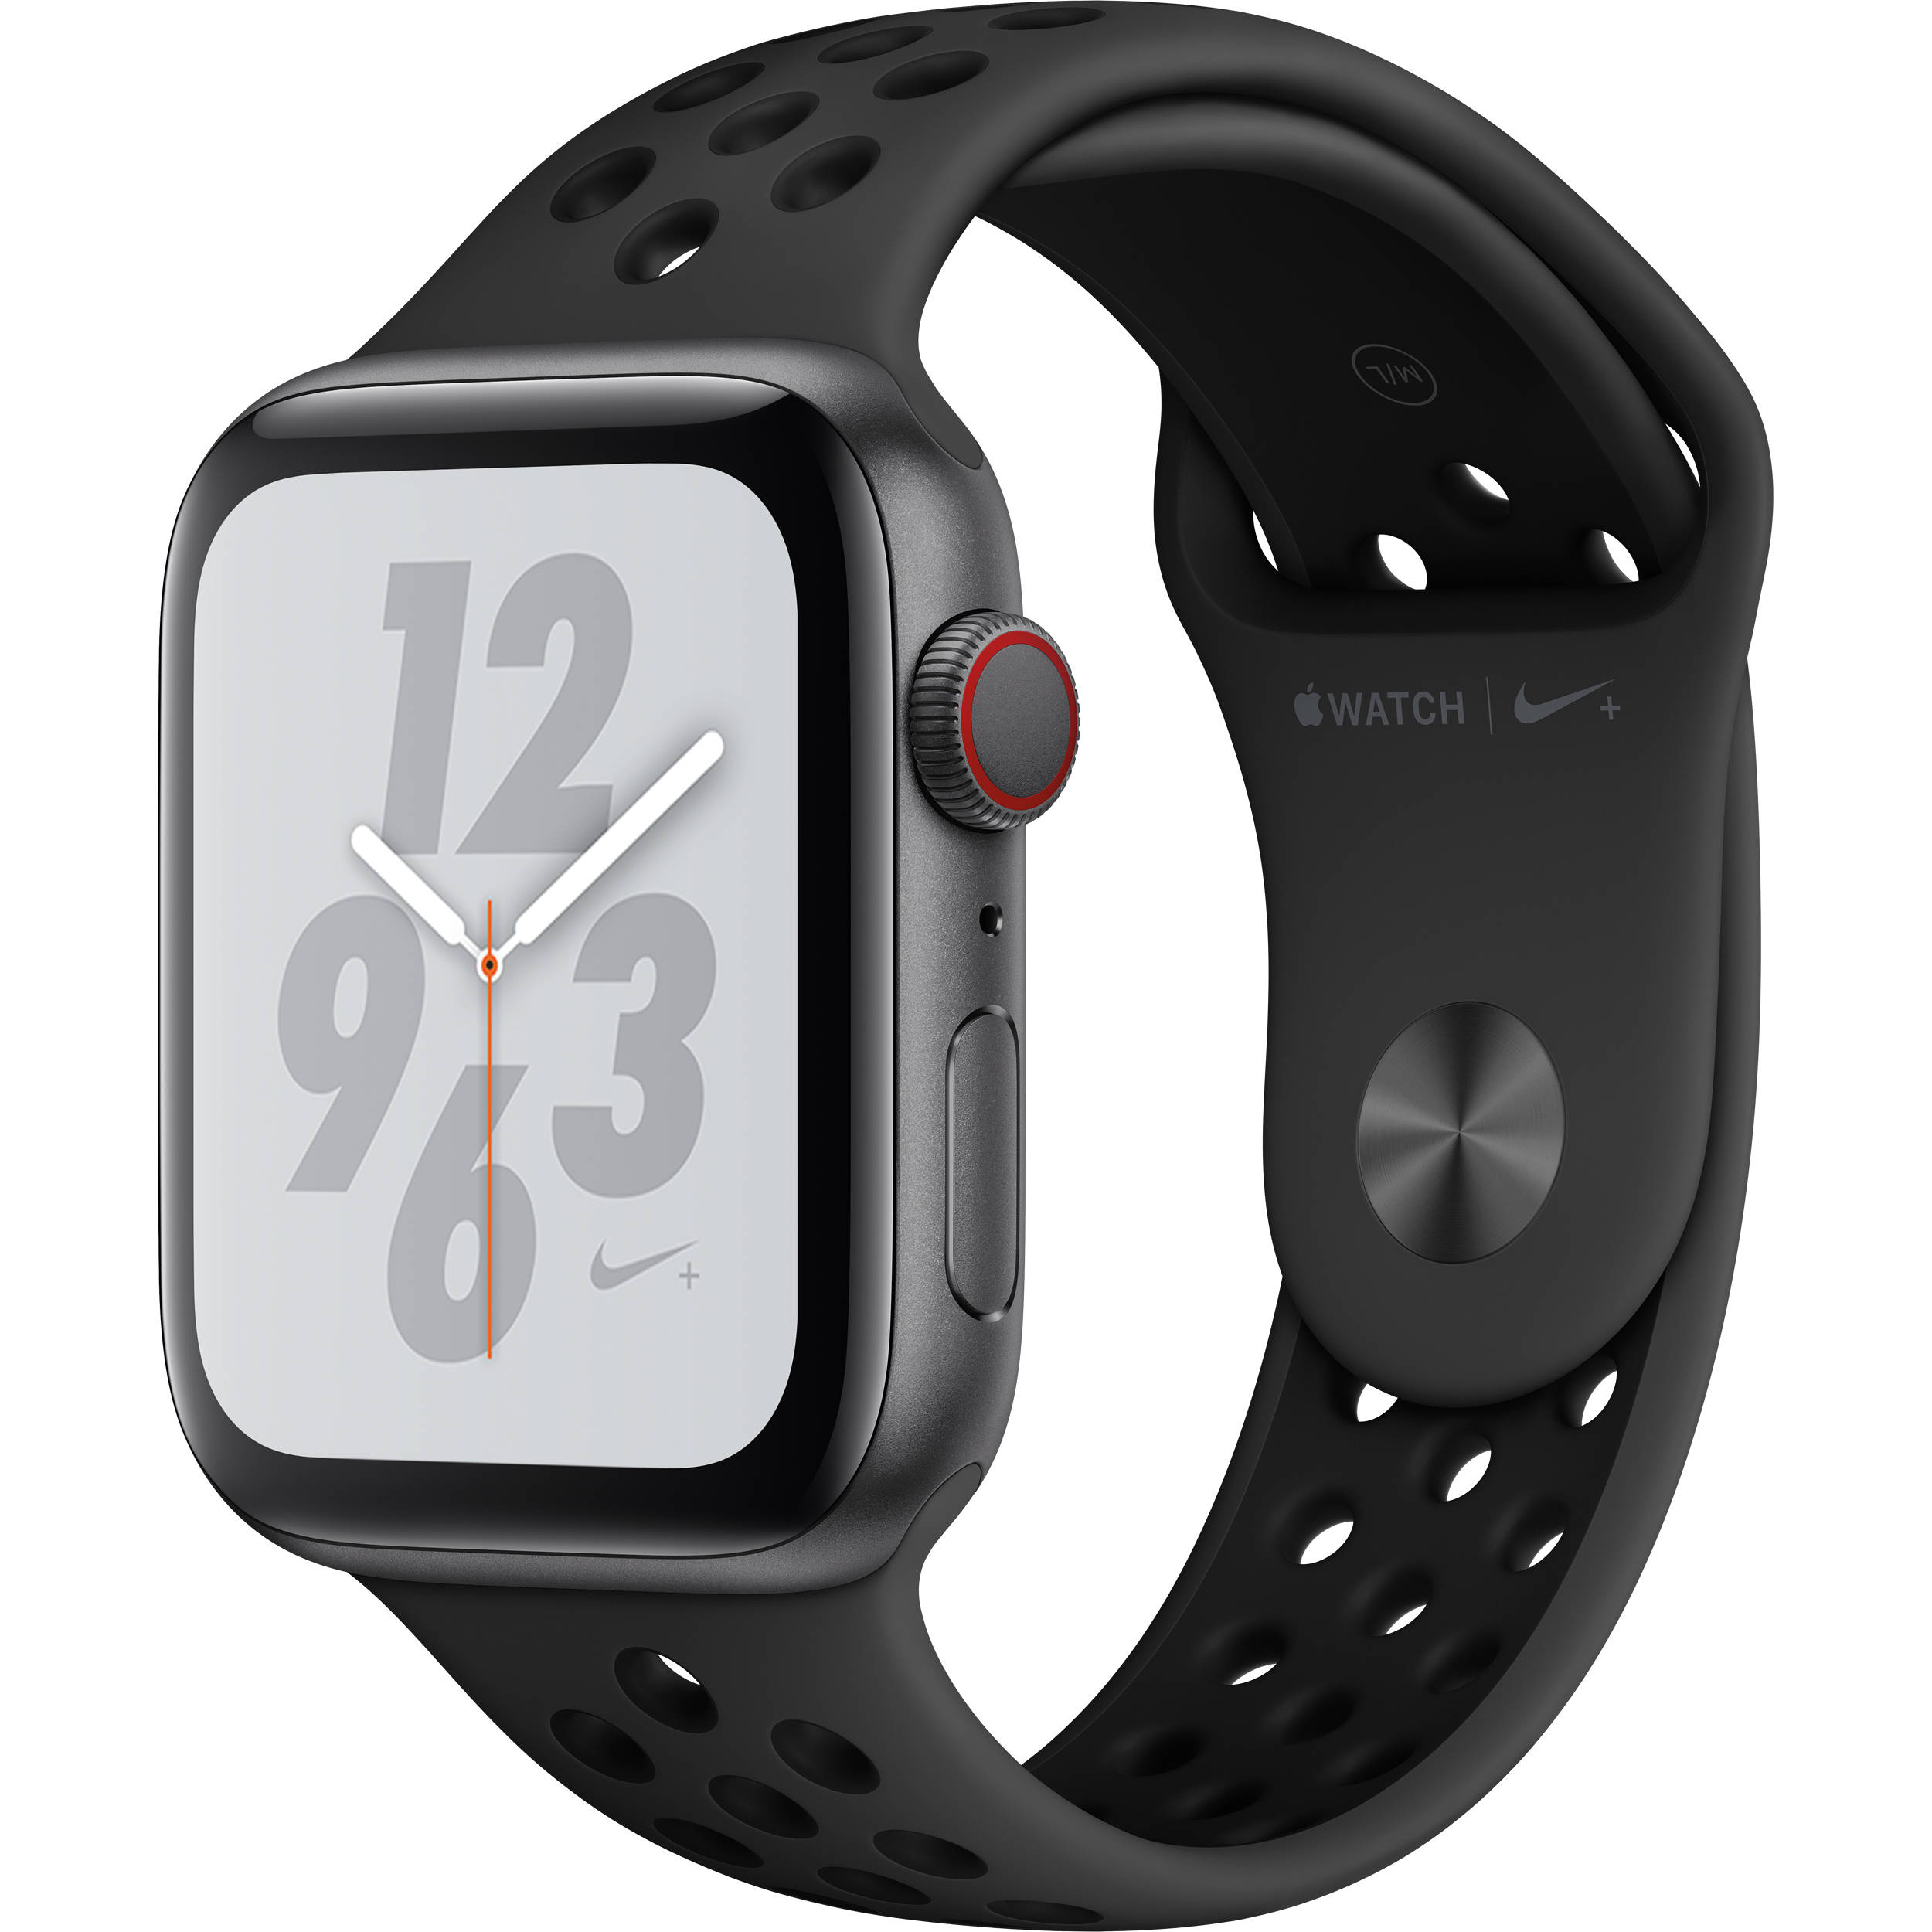 5a69e923 Apple Watch Nike+ Series 4 (GPS + Cellular, 44mm, Space Gray Aluminum,  Anthracite/Black Nike Sport Band)